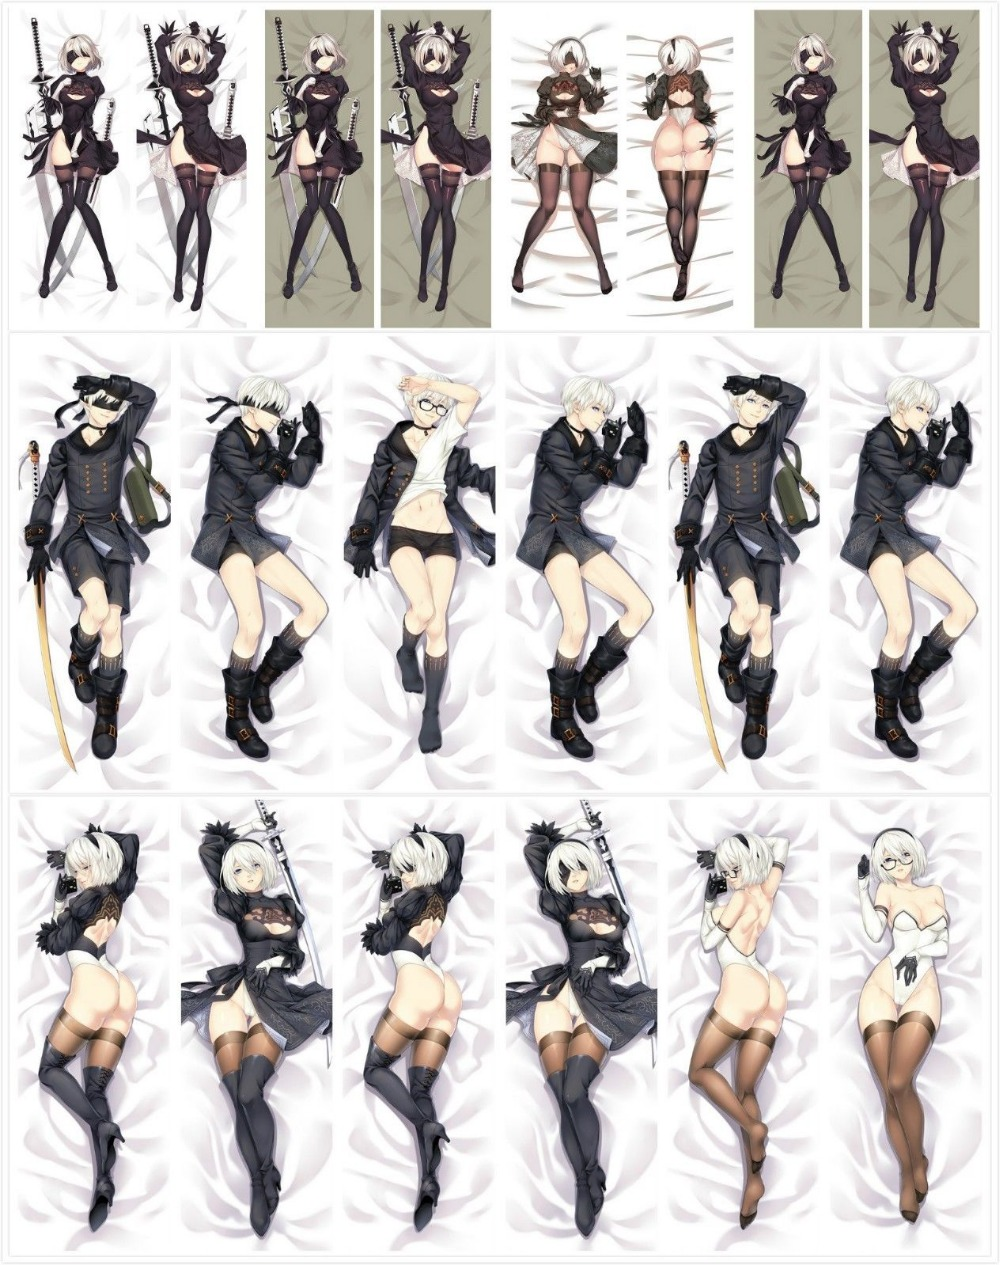 New Hot Game Dakimakura NieR:Automata YoRHa 2B Hugging Body Pillow Cover Case Bedding Covers